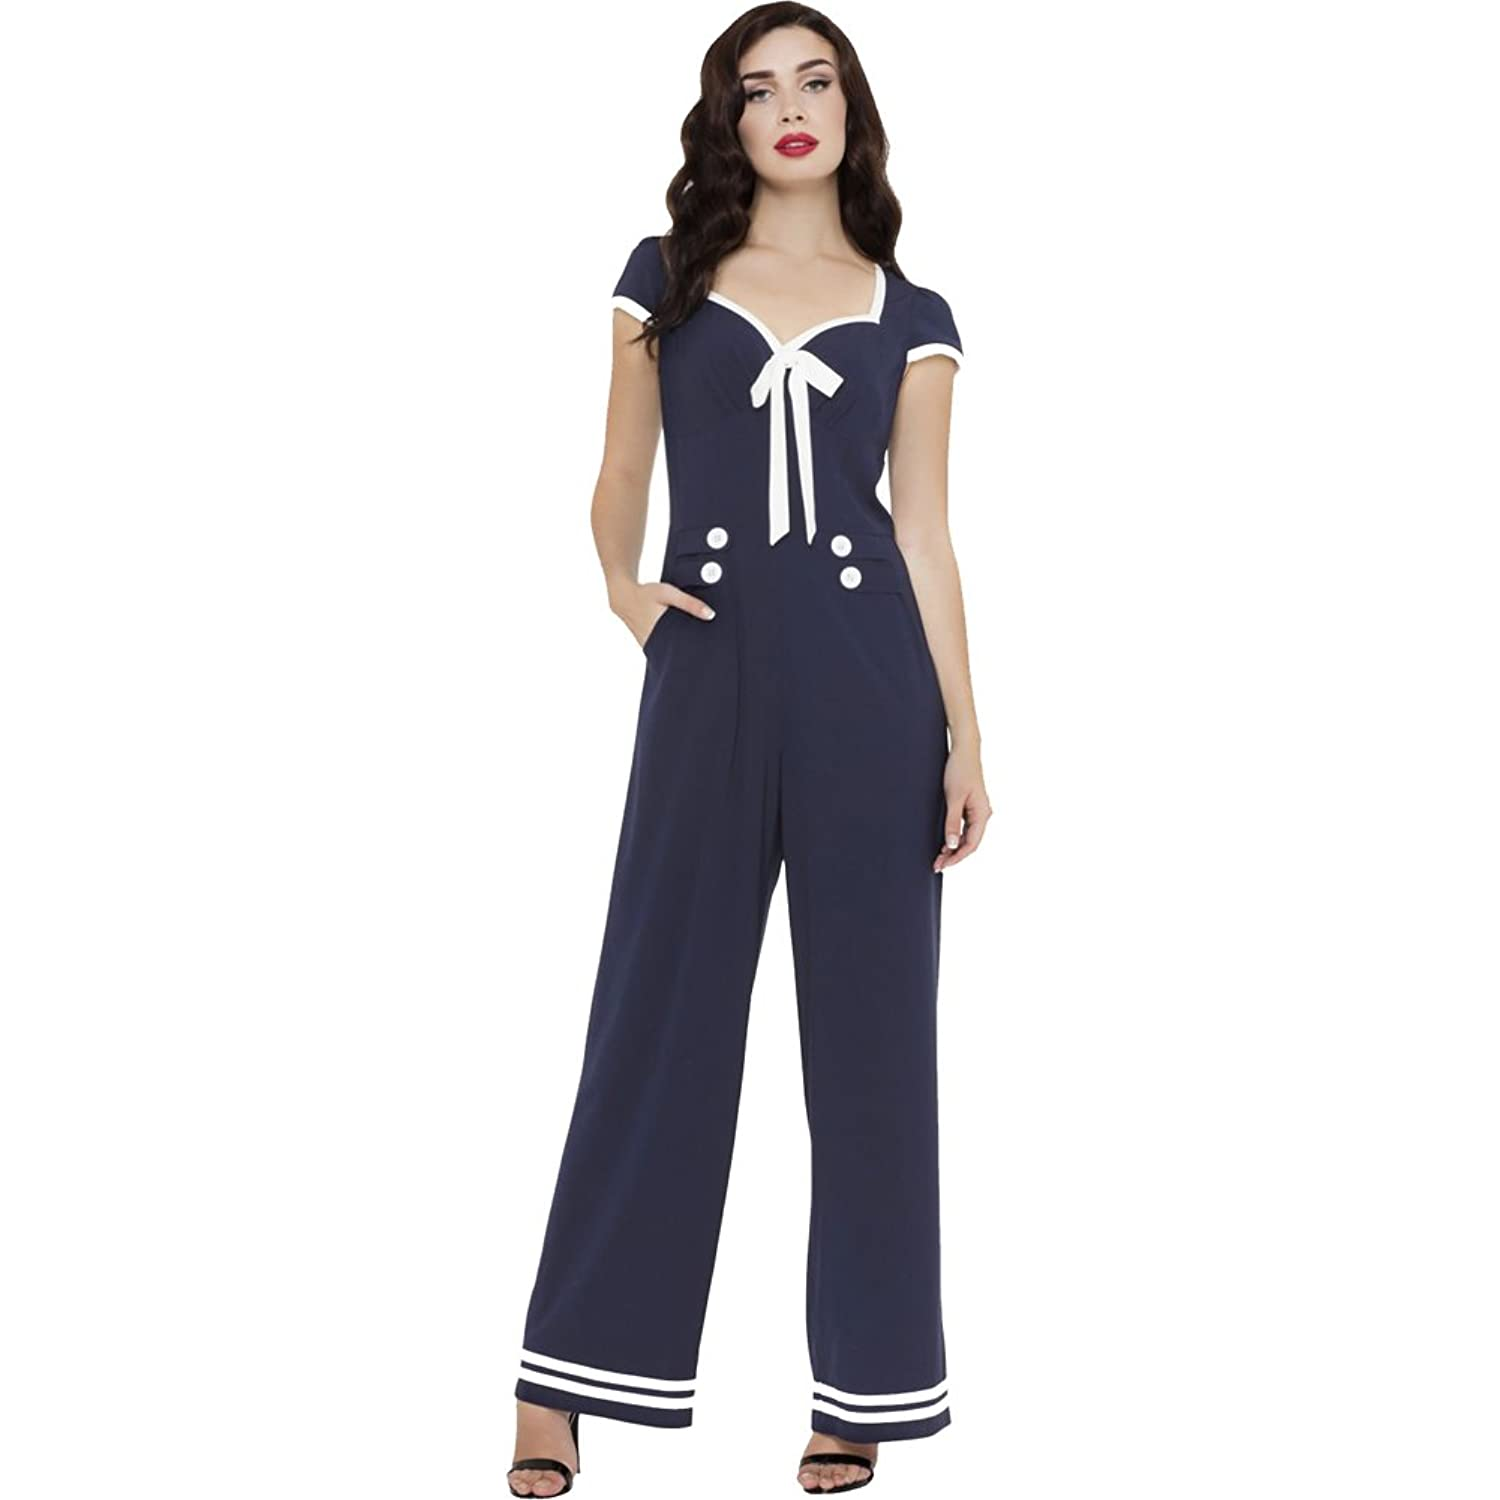 1940s Swing Pants & Sailor Trousers- Wide Leg, High Waist Womens Voodoo Vixen JOLENE Nautical Stripped Wide Leg Jumpsuit Navy $73.95 AT vintagedancer.com